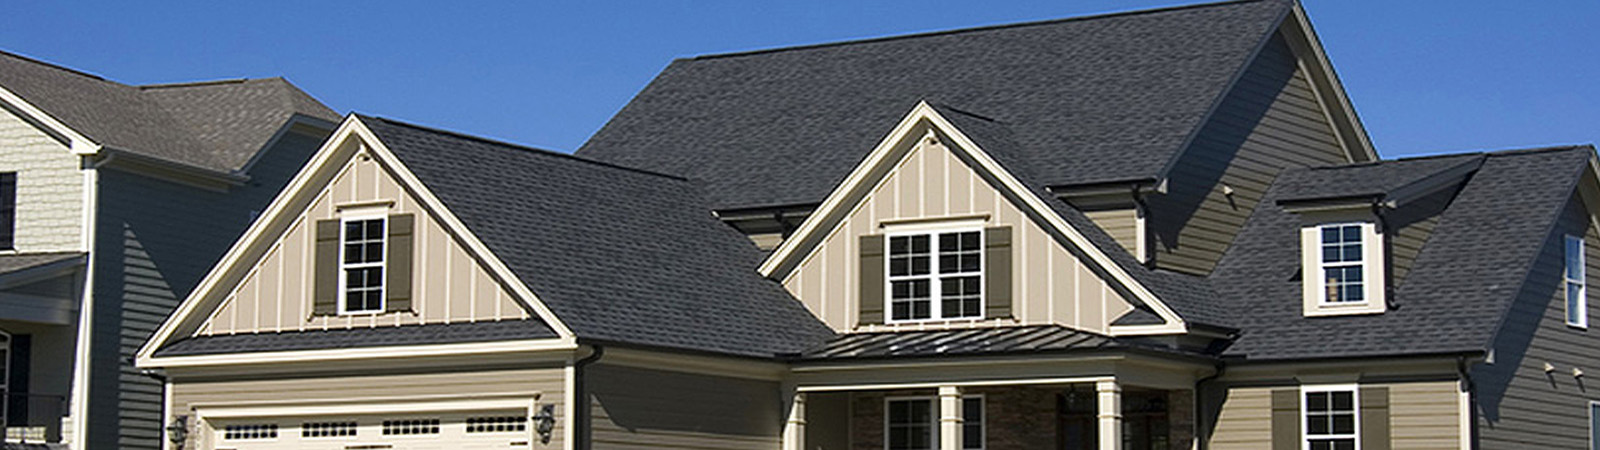 roof repair services in san Antonio|roof replacement services in san antonio|insurance claim roof repair in san Antonio|Best Roofing Contractor in San Antonio|roofing contractors in san Antonio